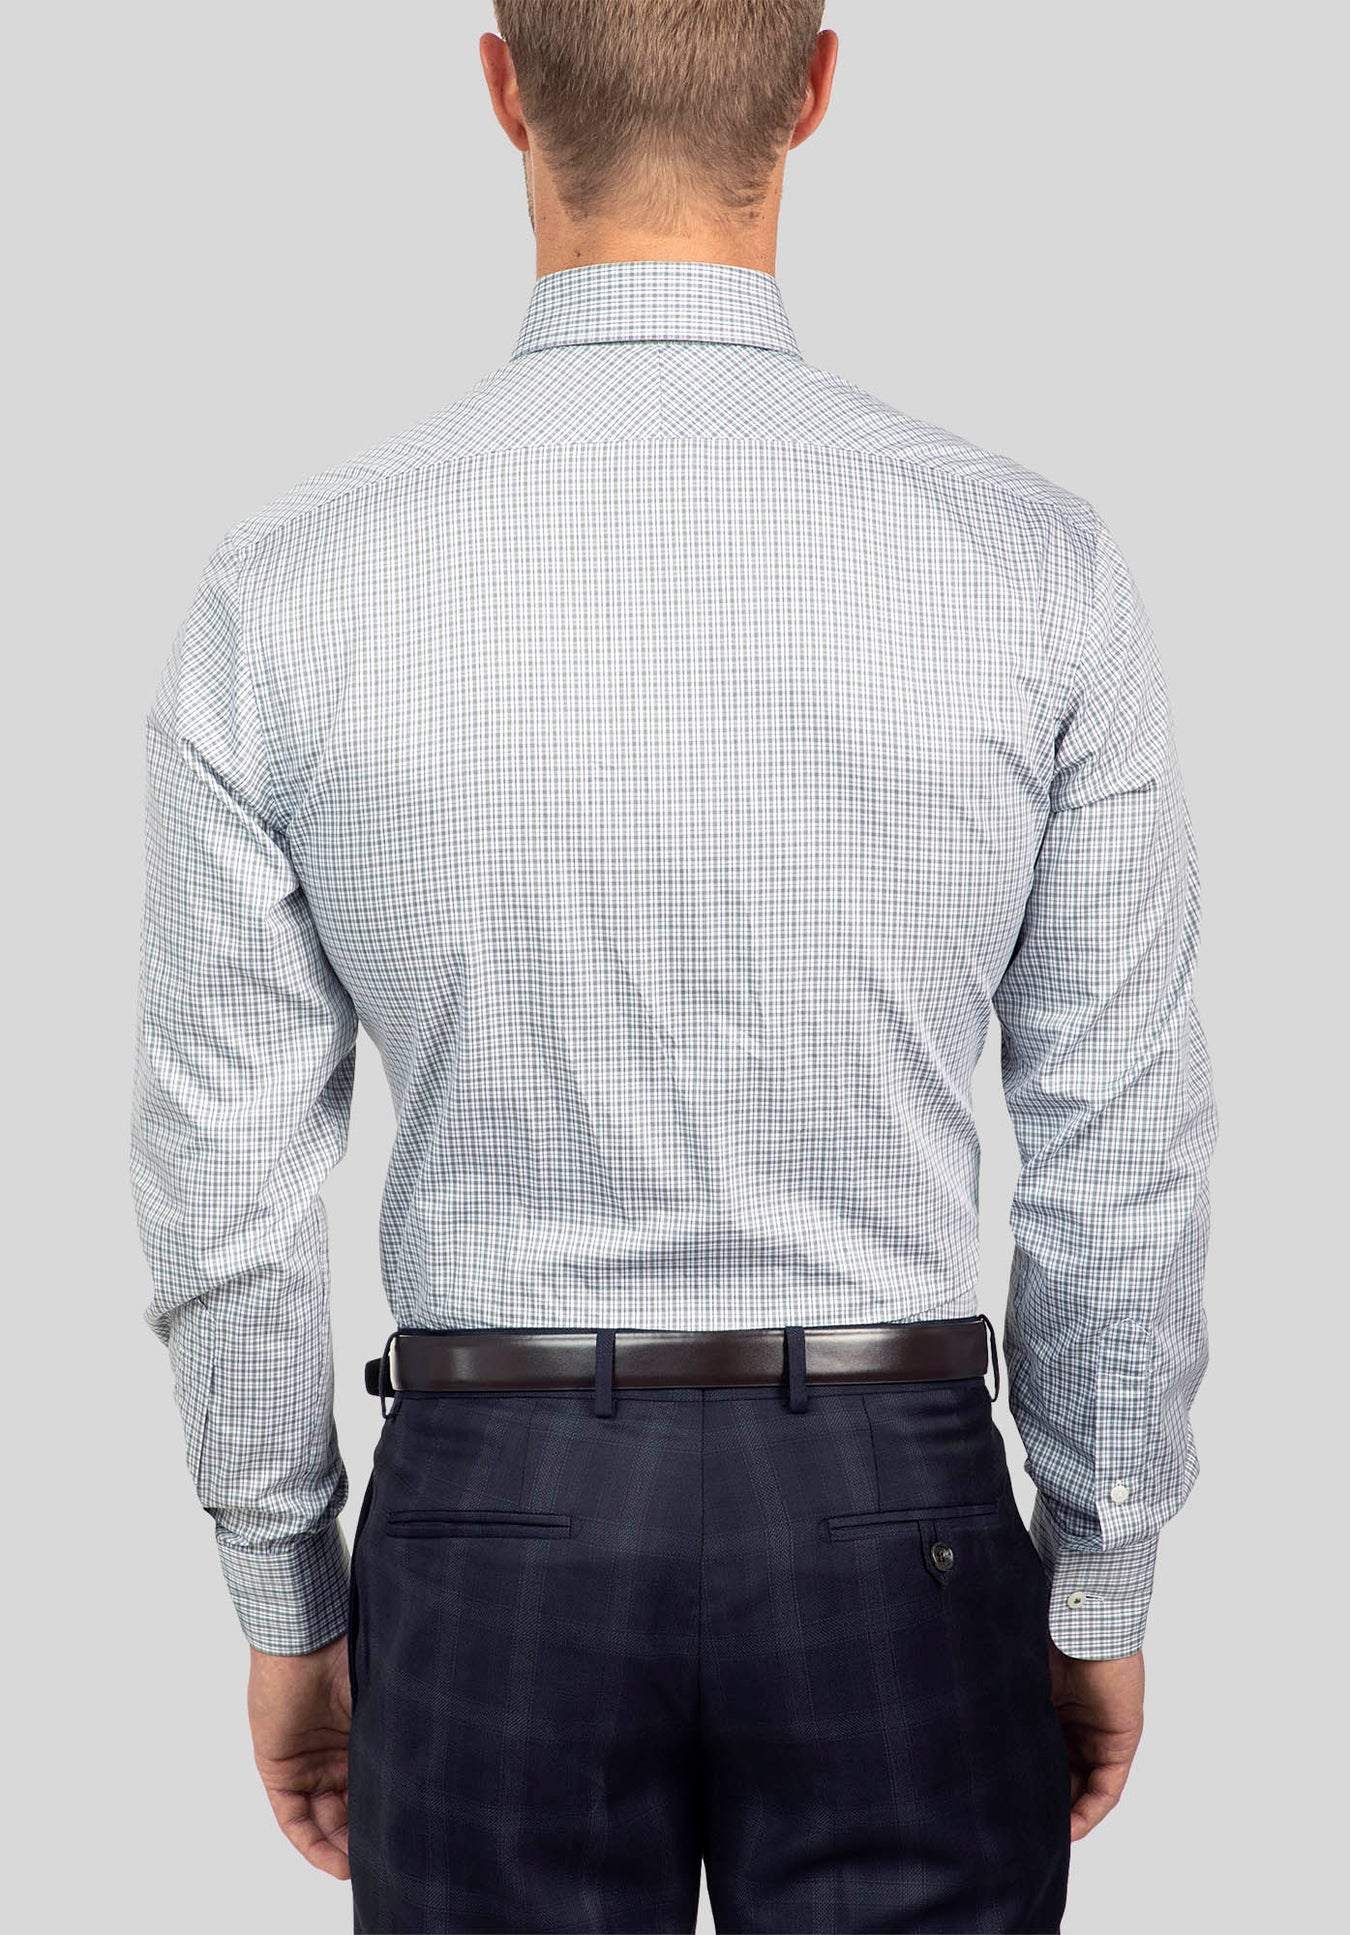 CHIEF SHIRT FJJ958 - Sage